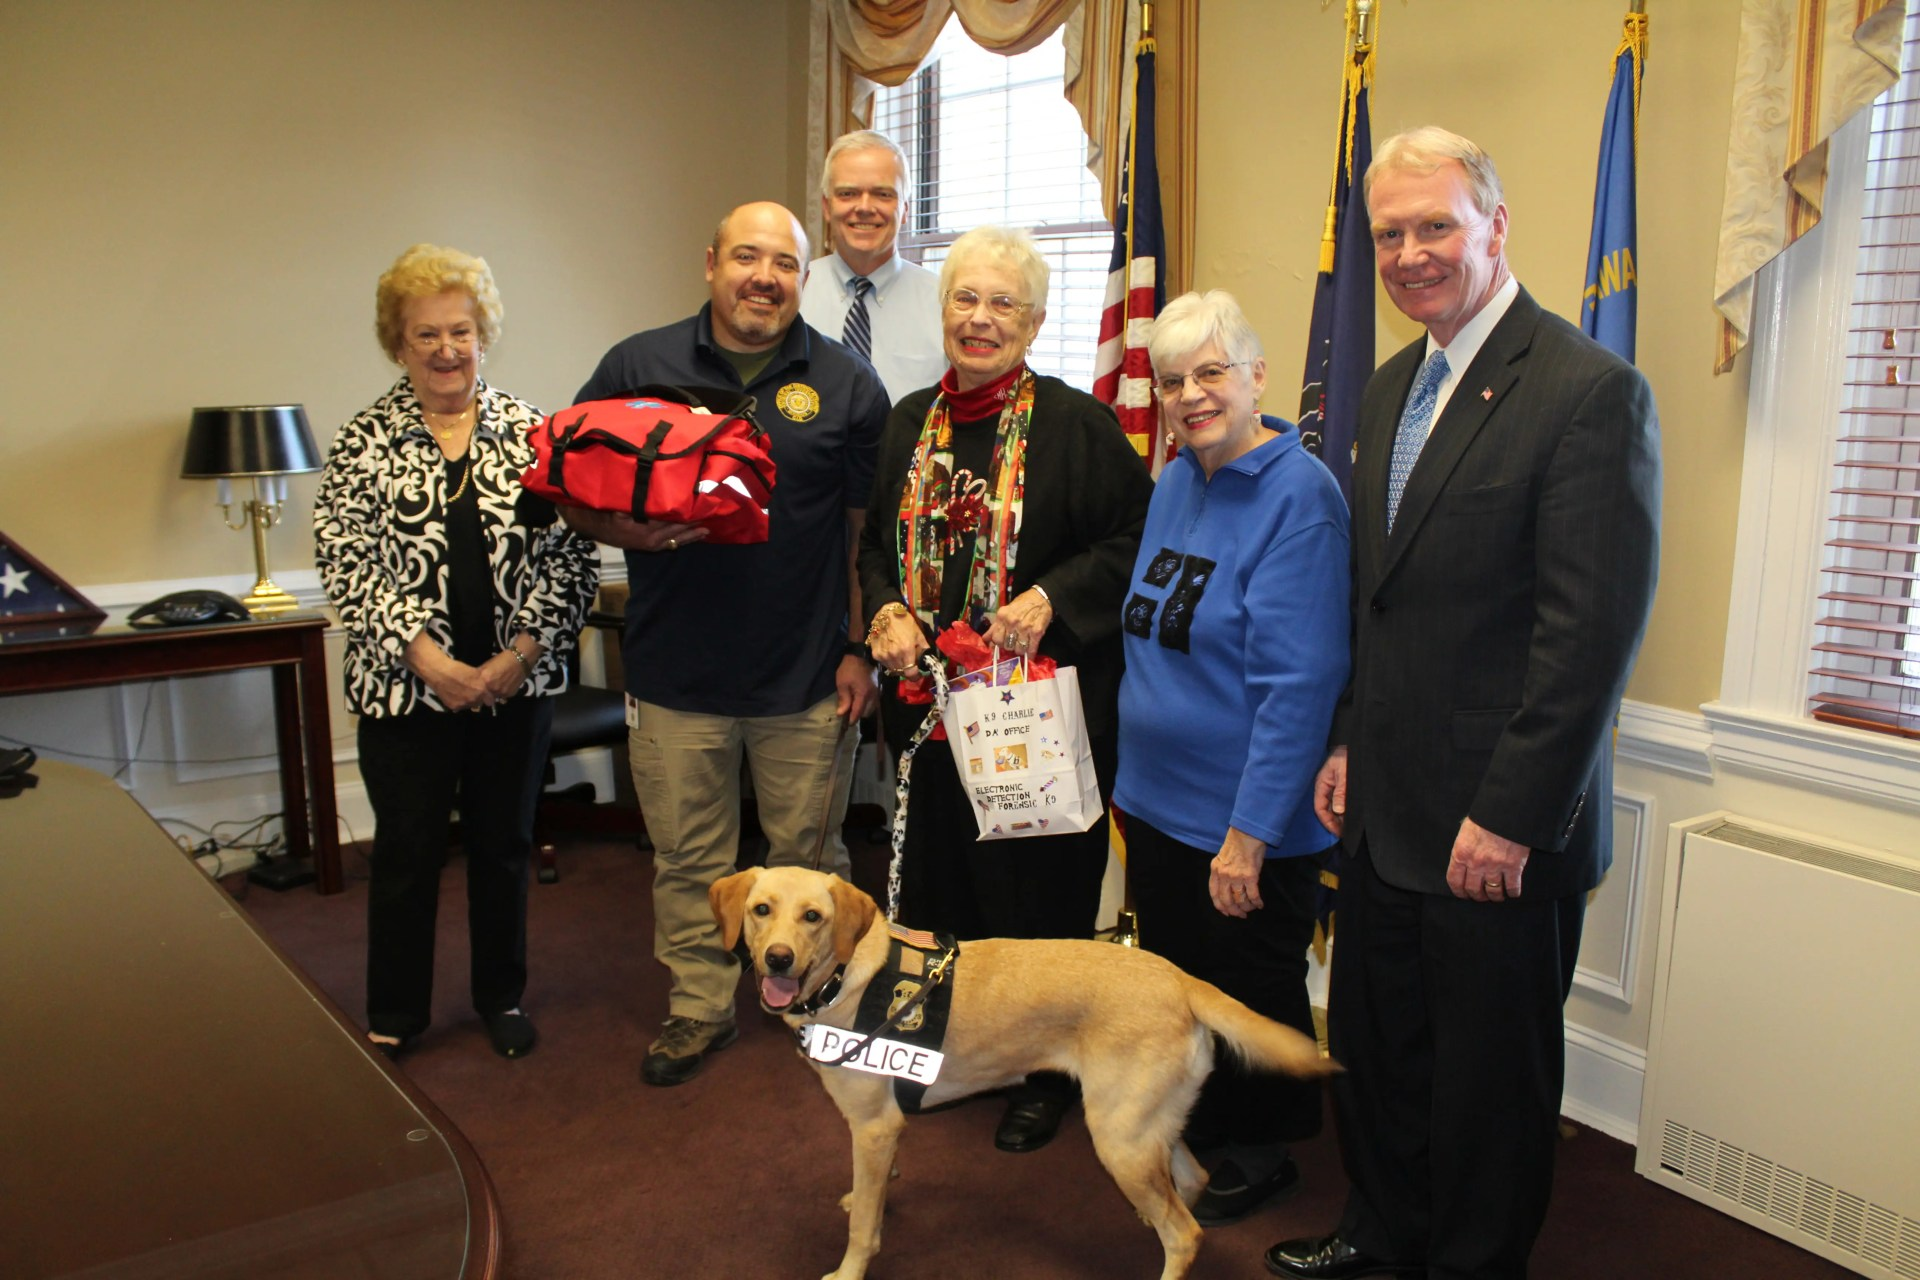 Pictured from left, Delaware County Kennel Club member Patricia Hamilton, Nat Evans, K-9 handler and ICAC forensic analyst, Chief Joseph Ryan of the Delaware County Criminal Investigation Division, Delaware County Kennel Club member Marge Remolde, ICAC K-9 Charlie, Delaware County Kennel Club member Jane Kramer and District Attorney Jack Whelan.